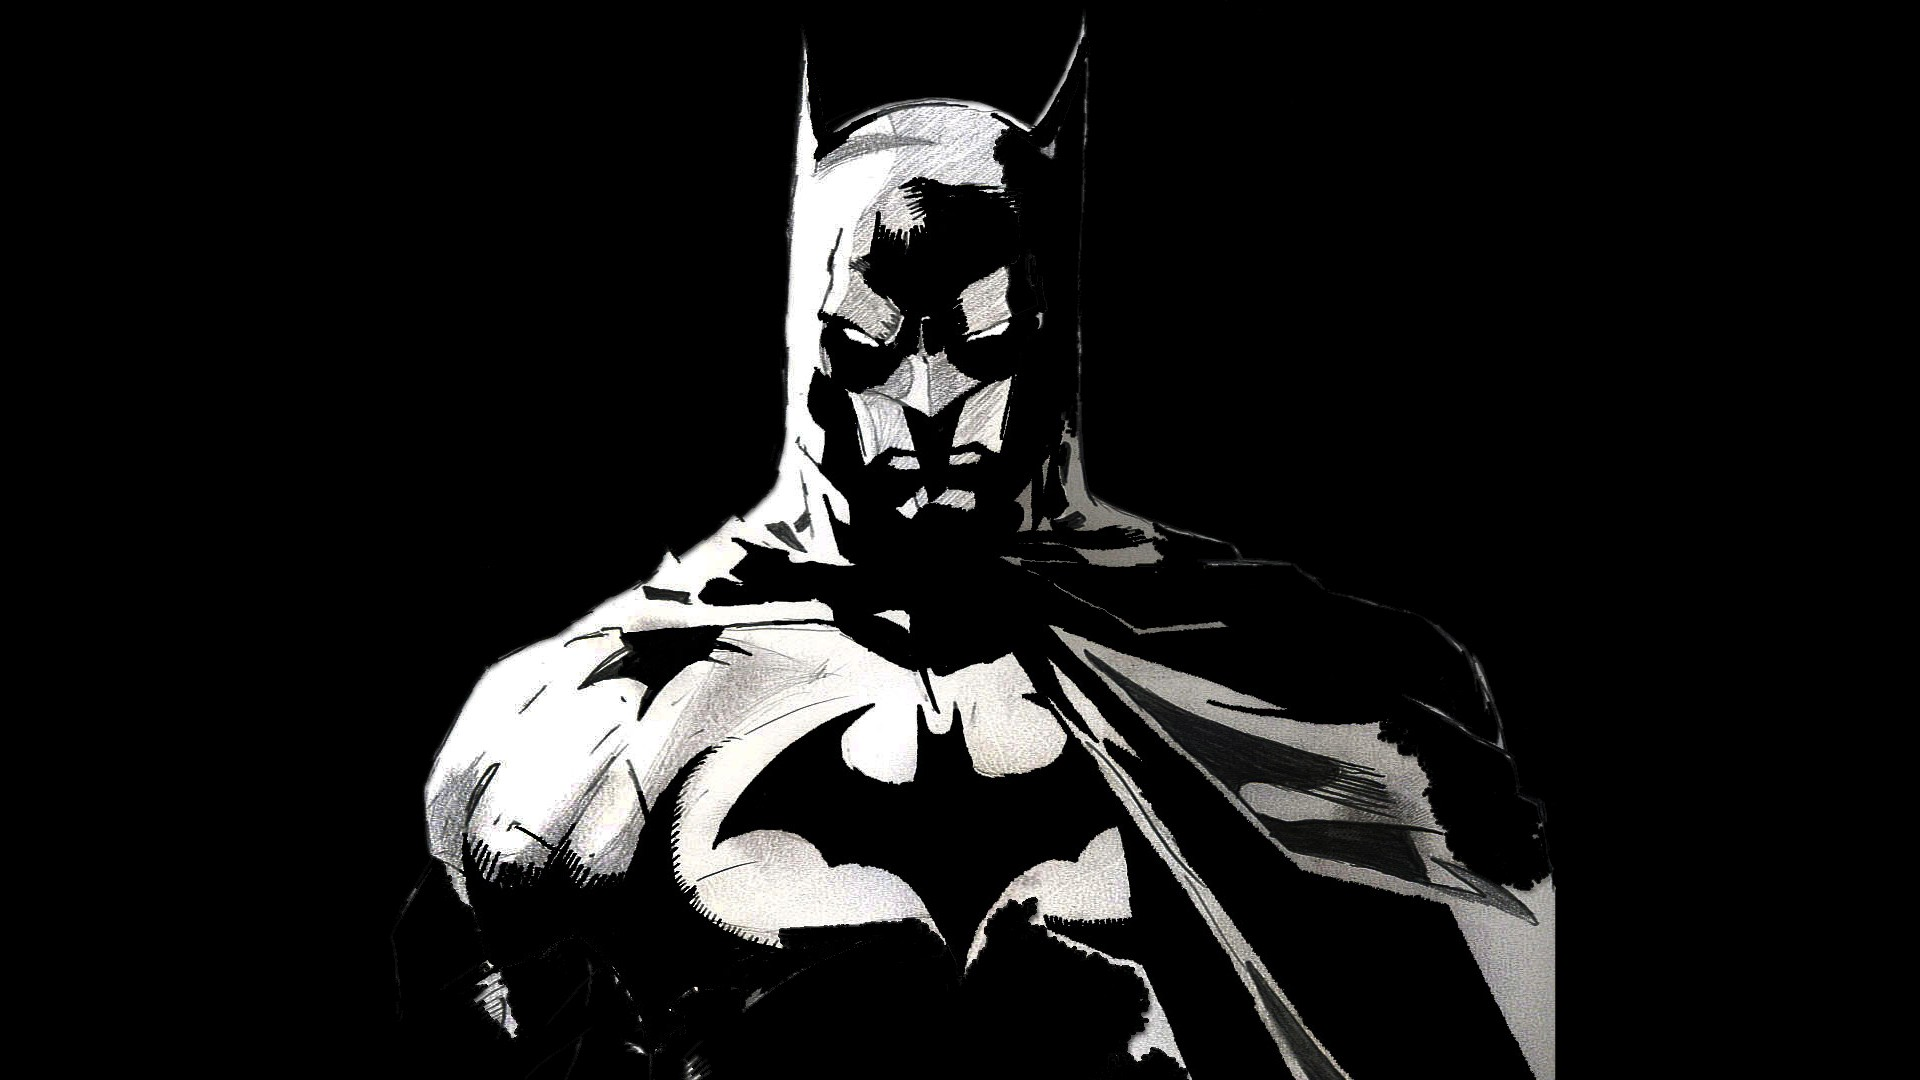 Batman Black And White Wallpaper